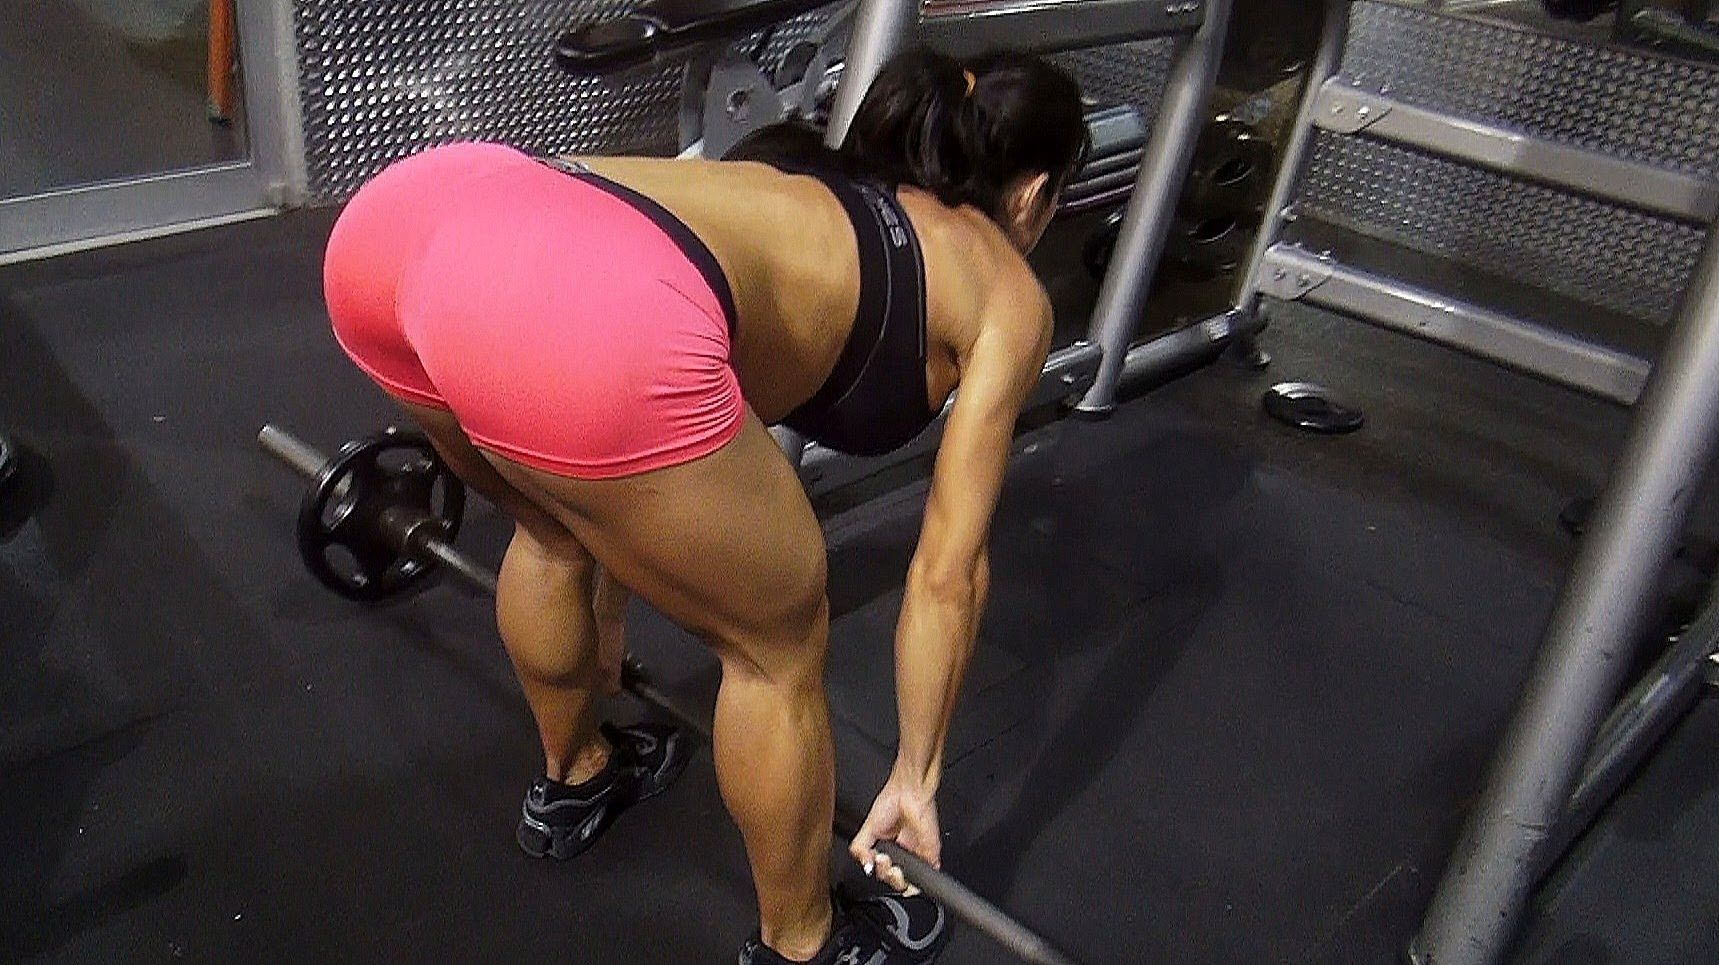 how to get a bigger butt at the gym